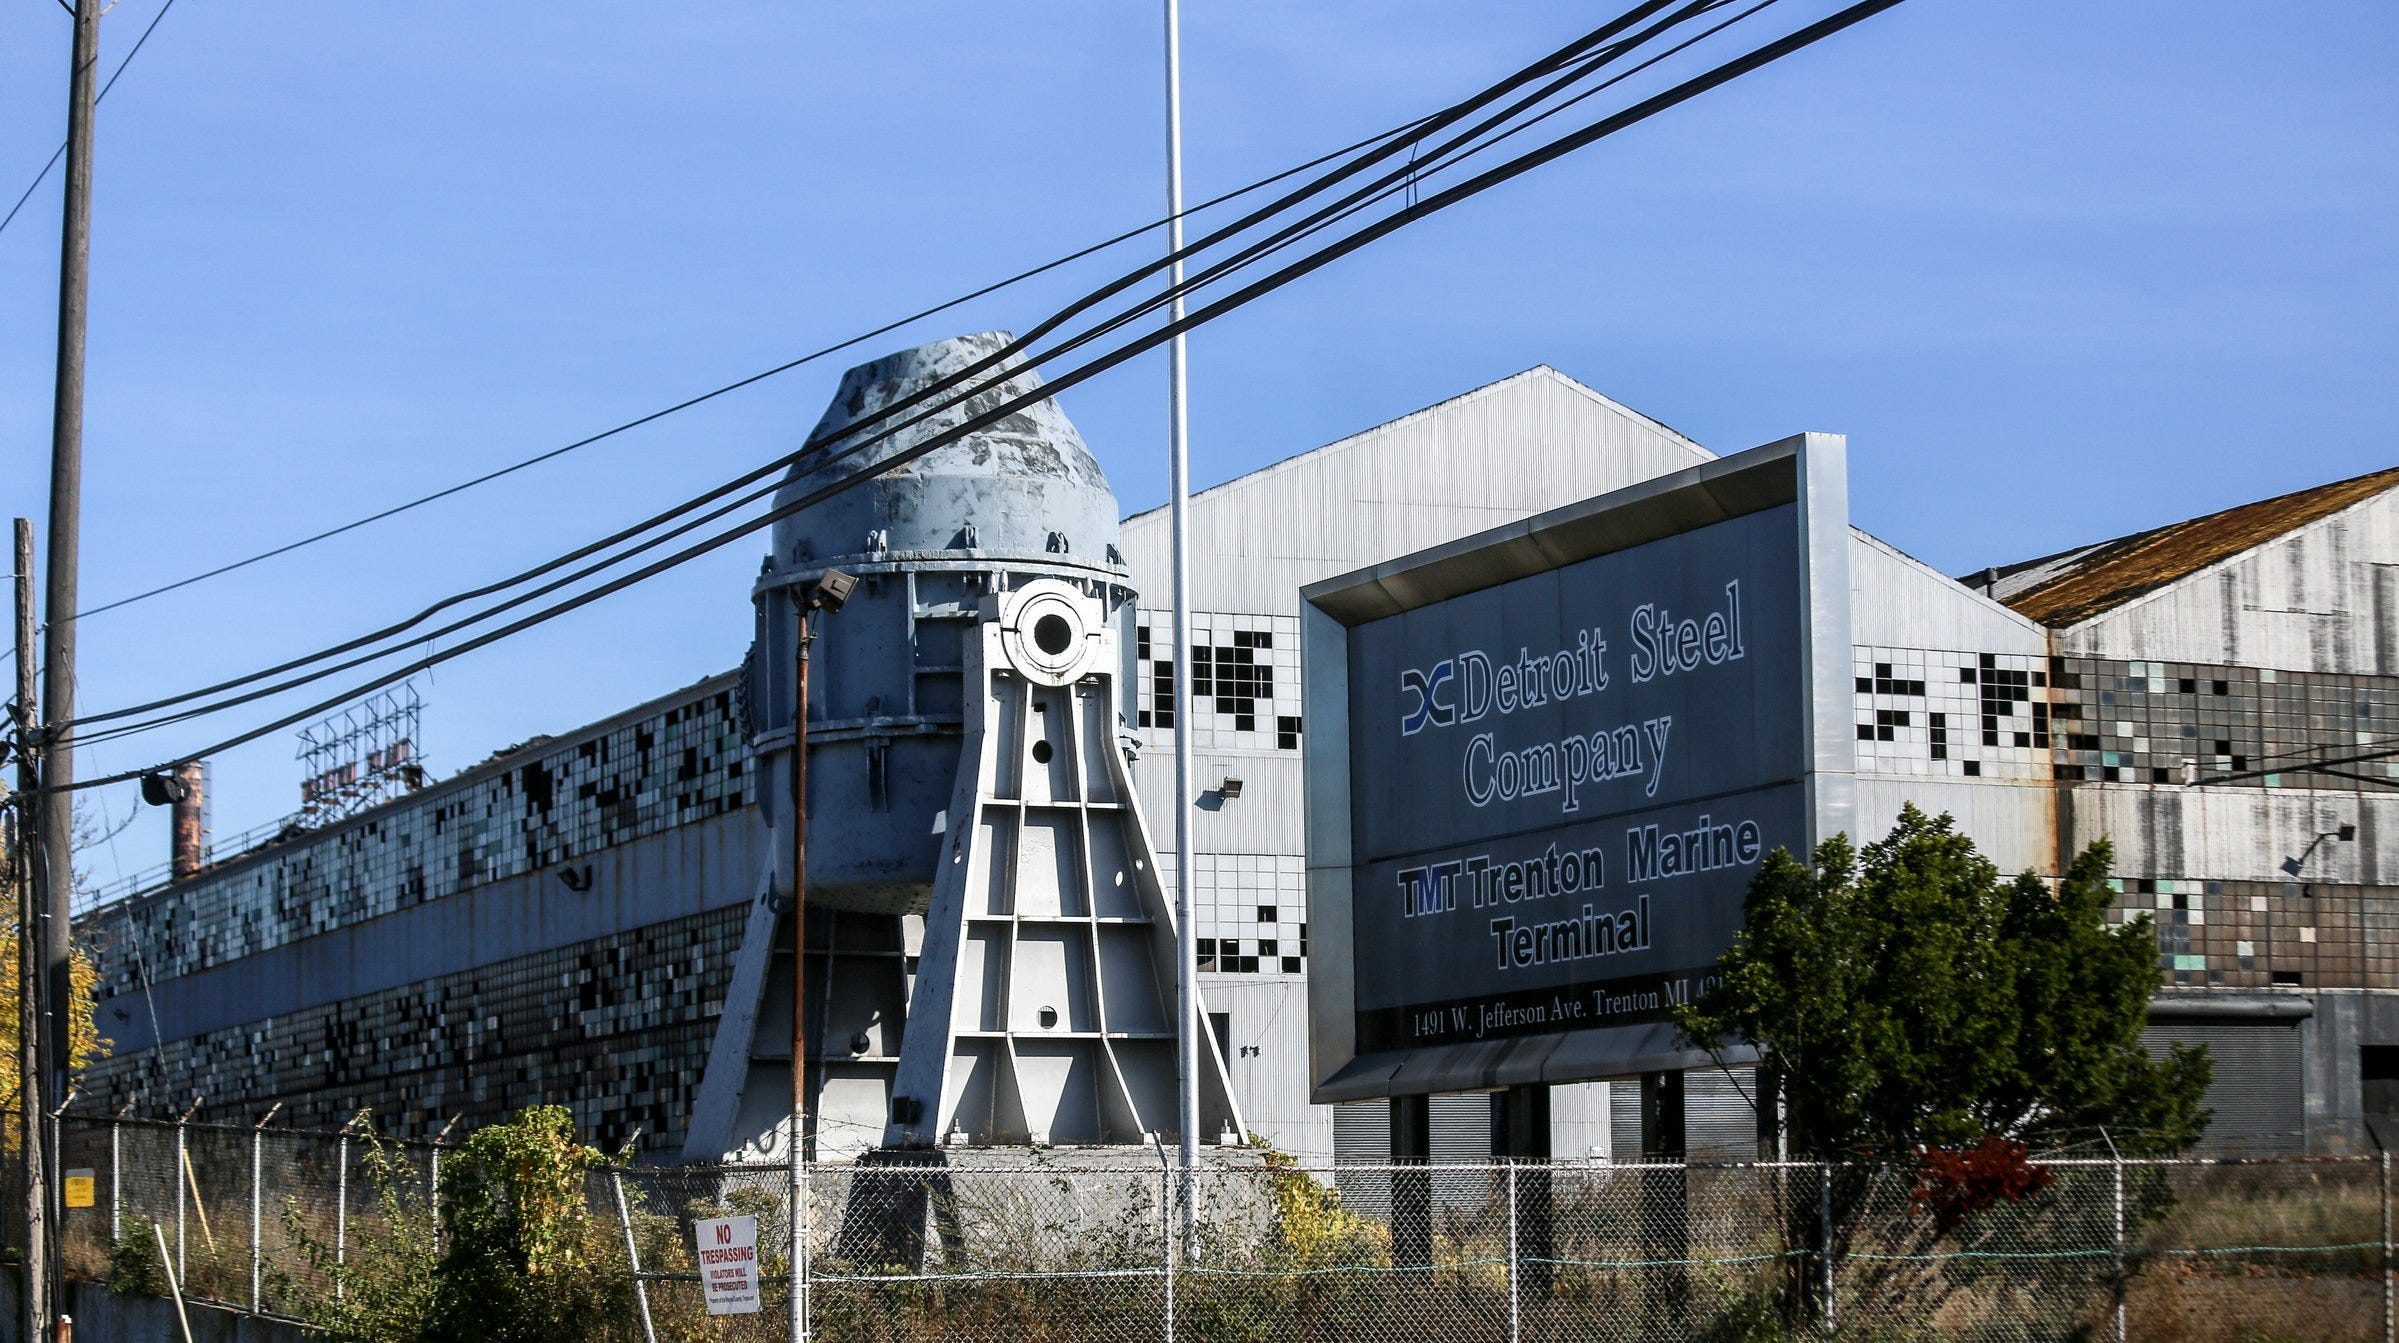 McLouth Steel site could get millions in federal funds for cleanup